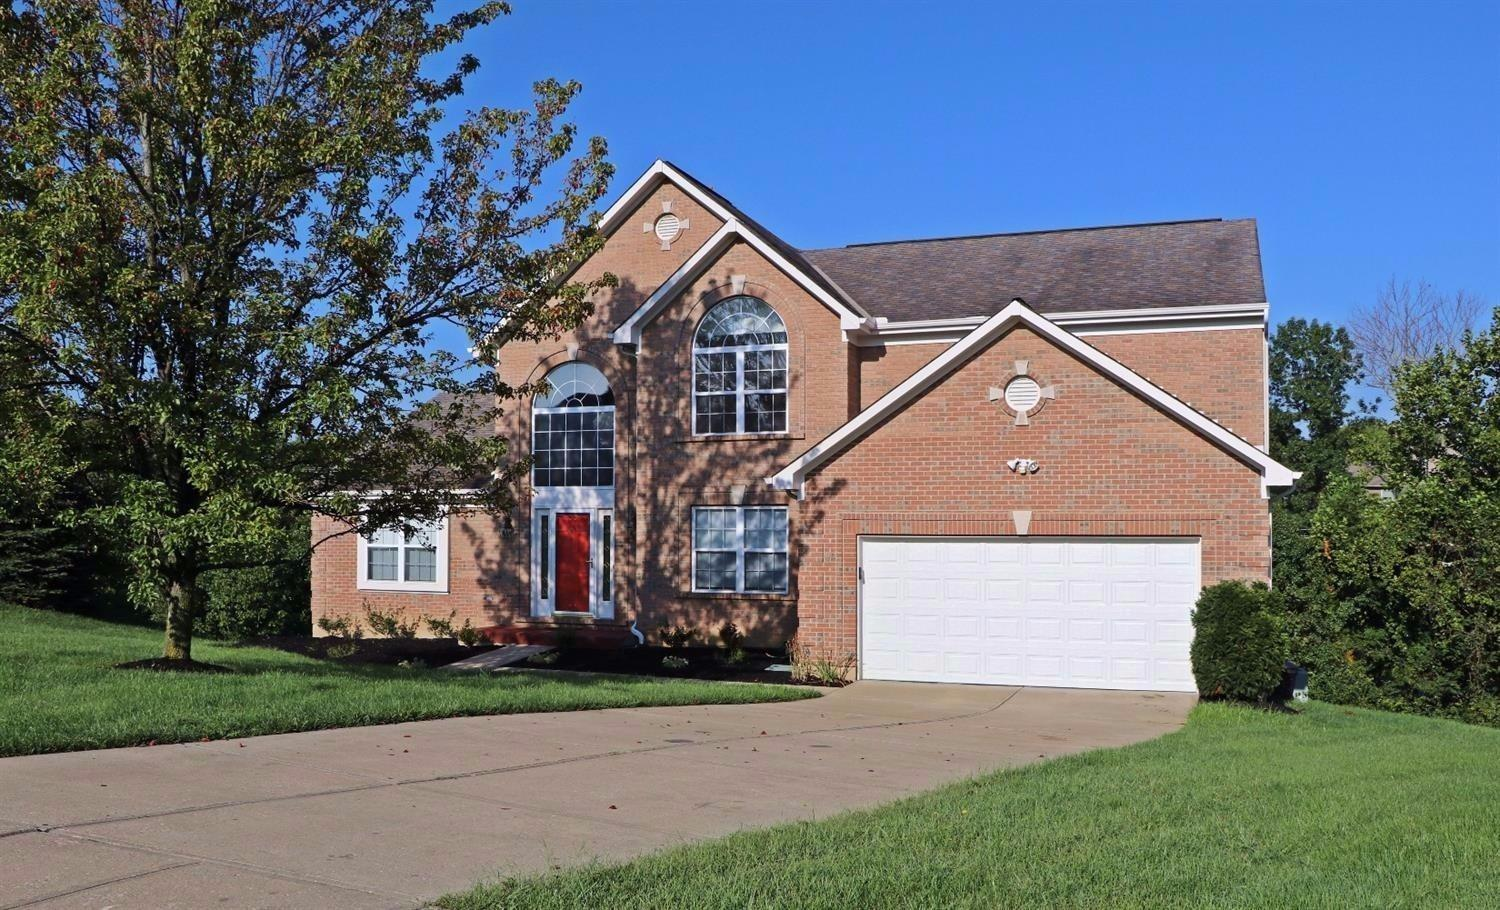 Photo 1 for 2005 Cornucopia Ct Independence, KY 41051